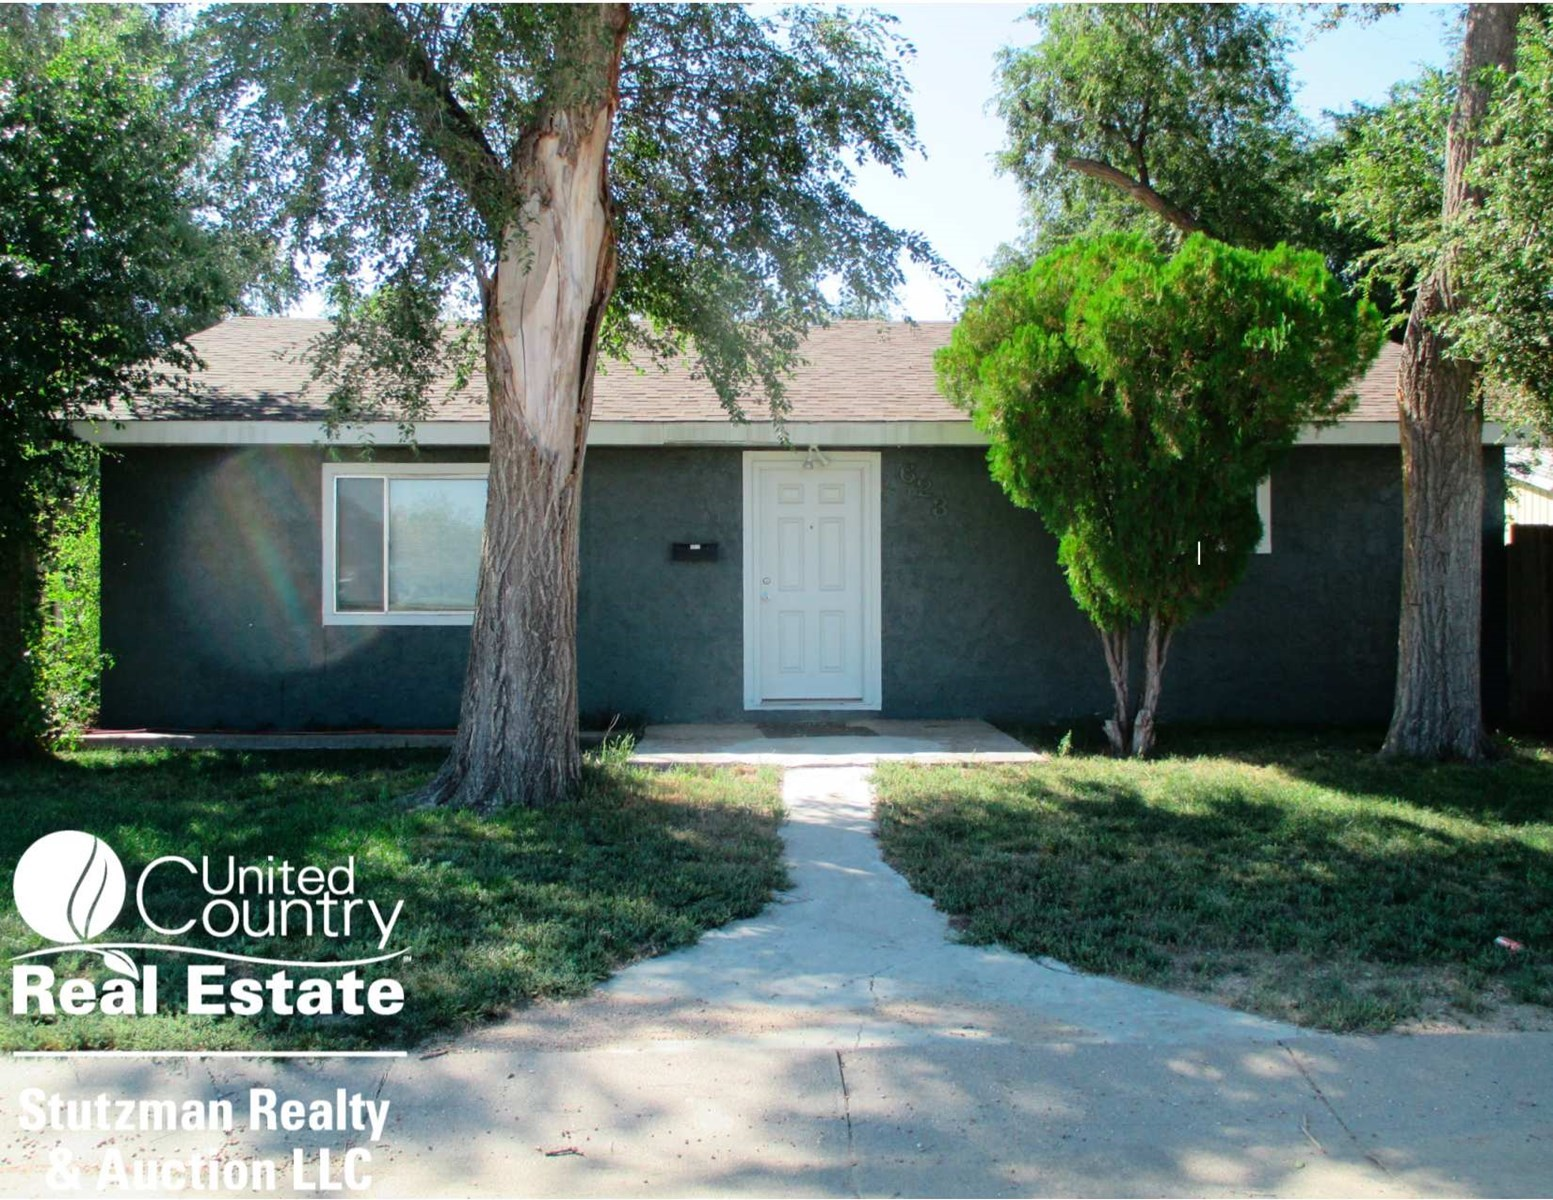 WELL MAINTAINED HOME FOR SALE IN GRANT COUNTY, KANSAS